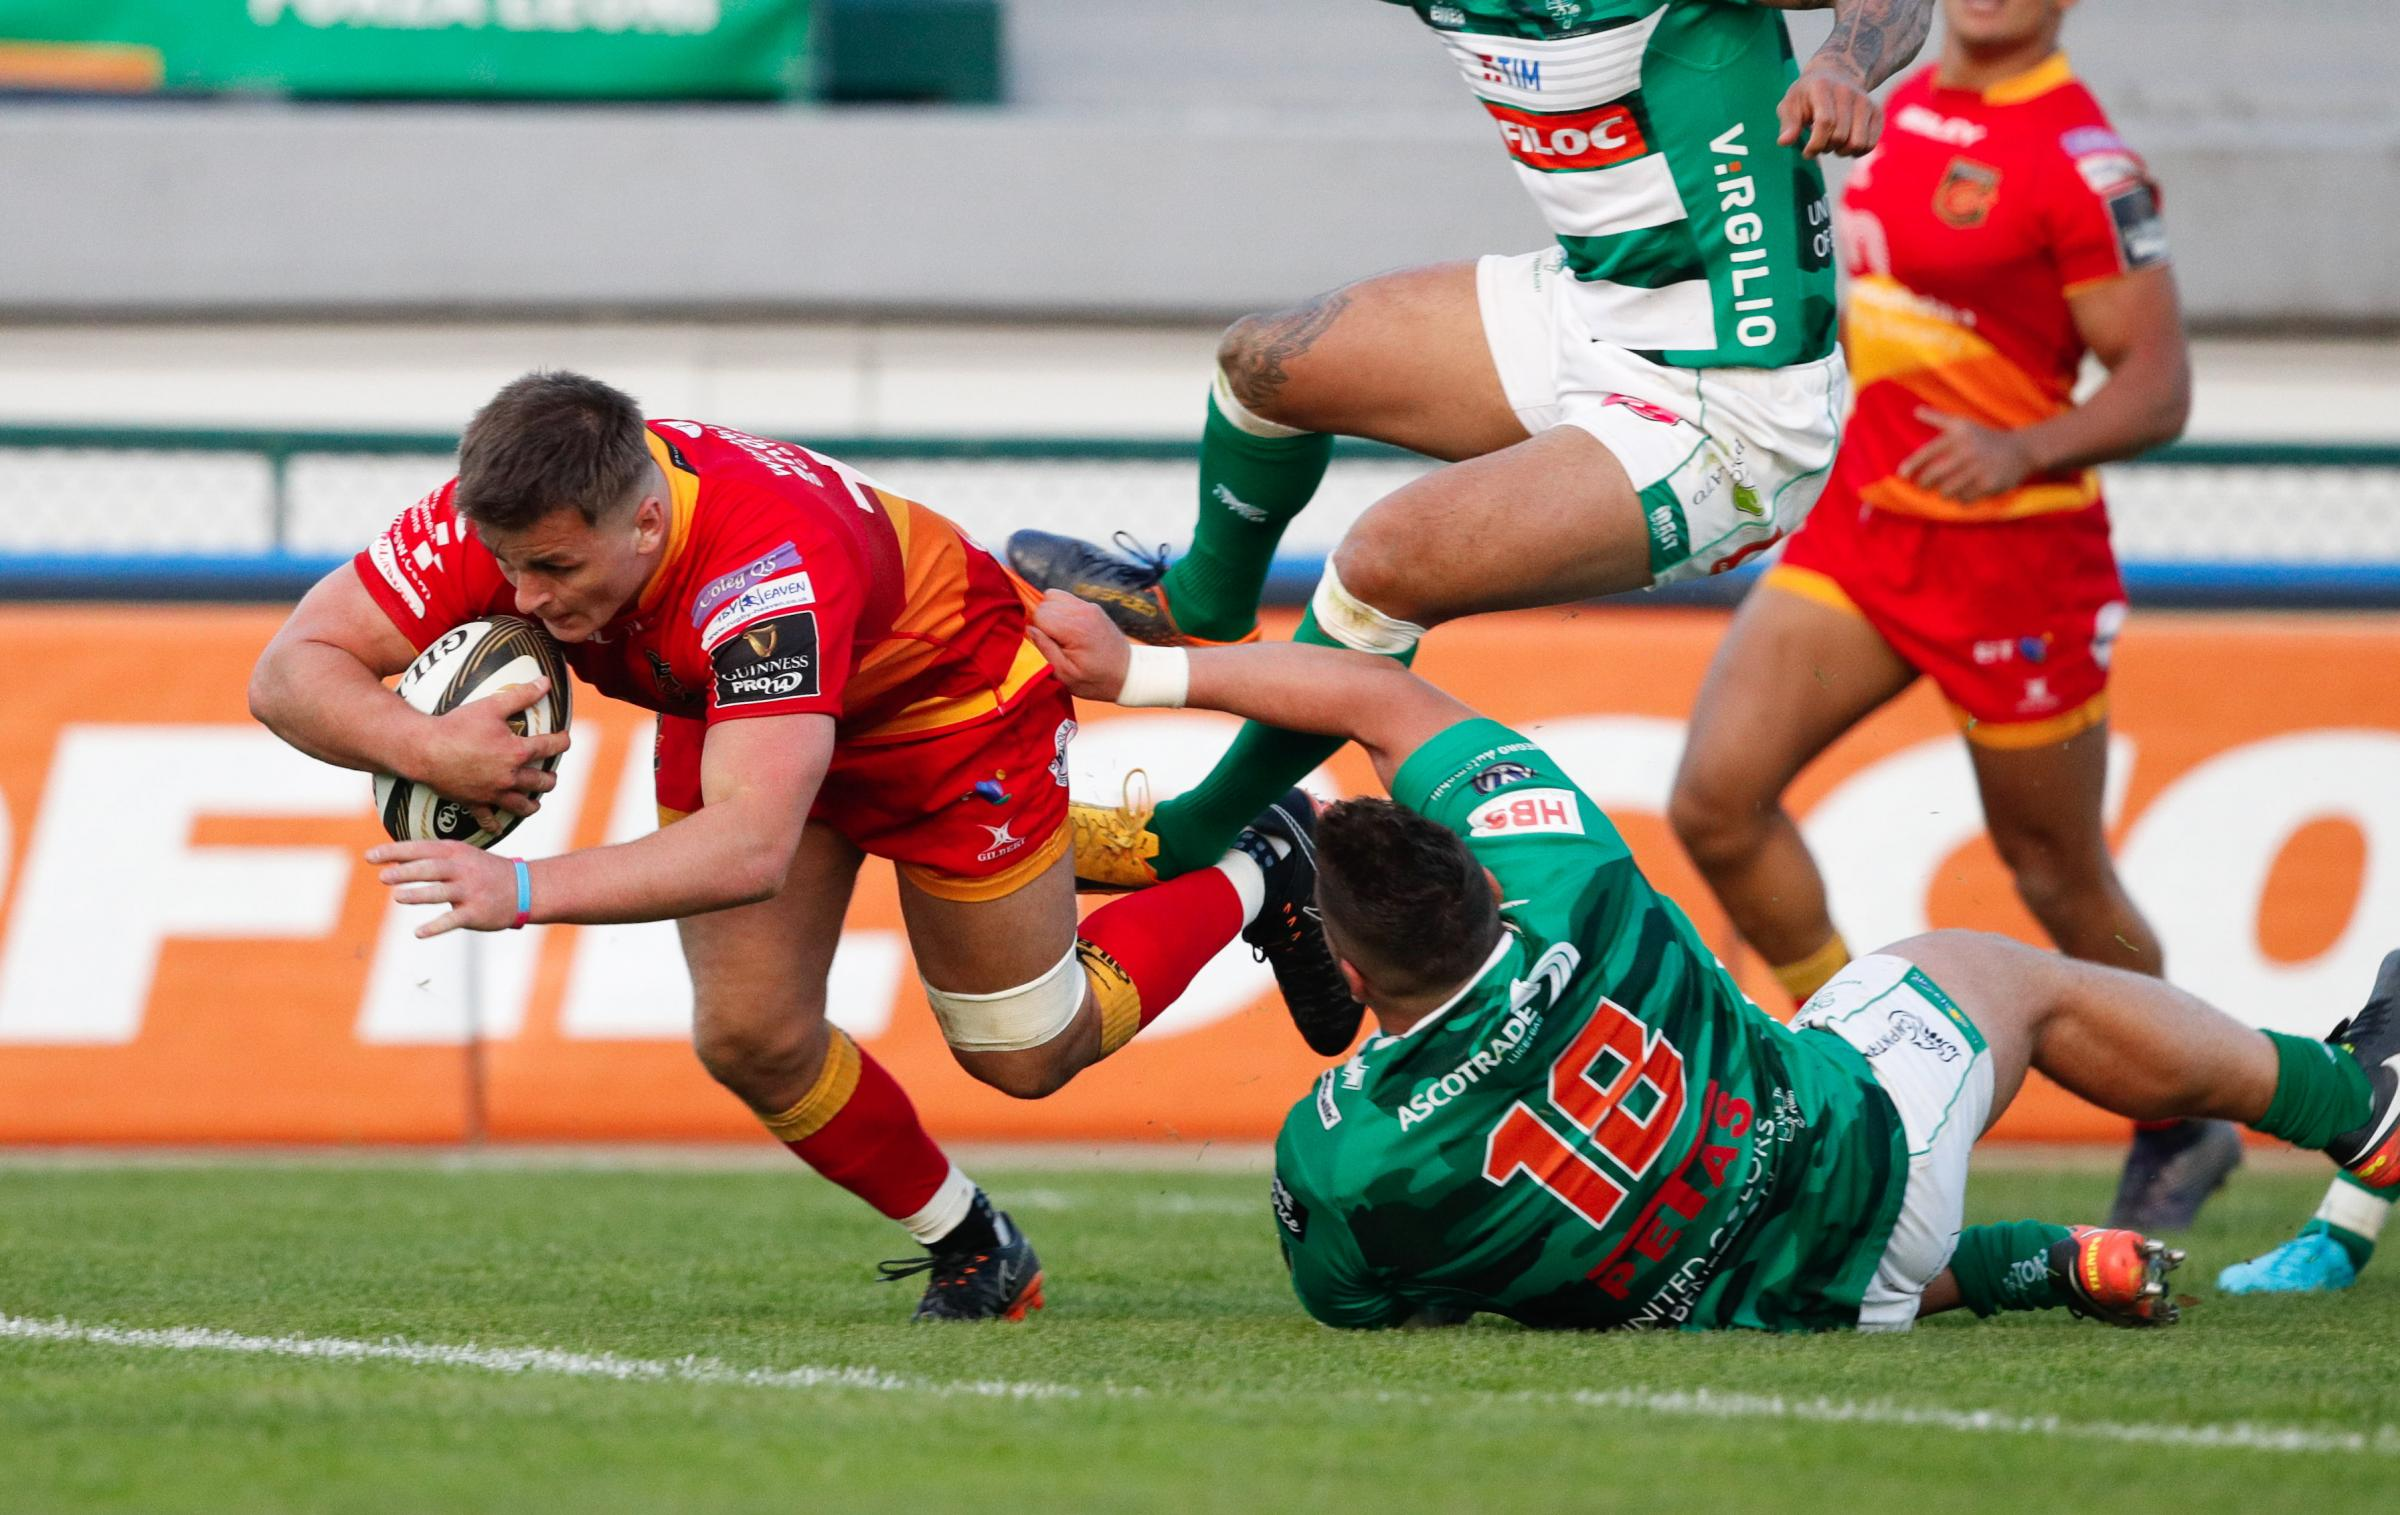 TRY TIME: Connor Edwards breaks the tackle of Tiziano Pasquali to score against Benetton